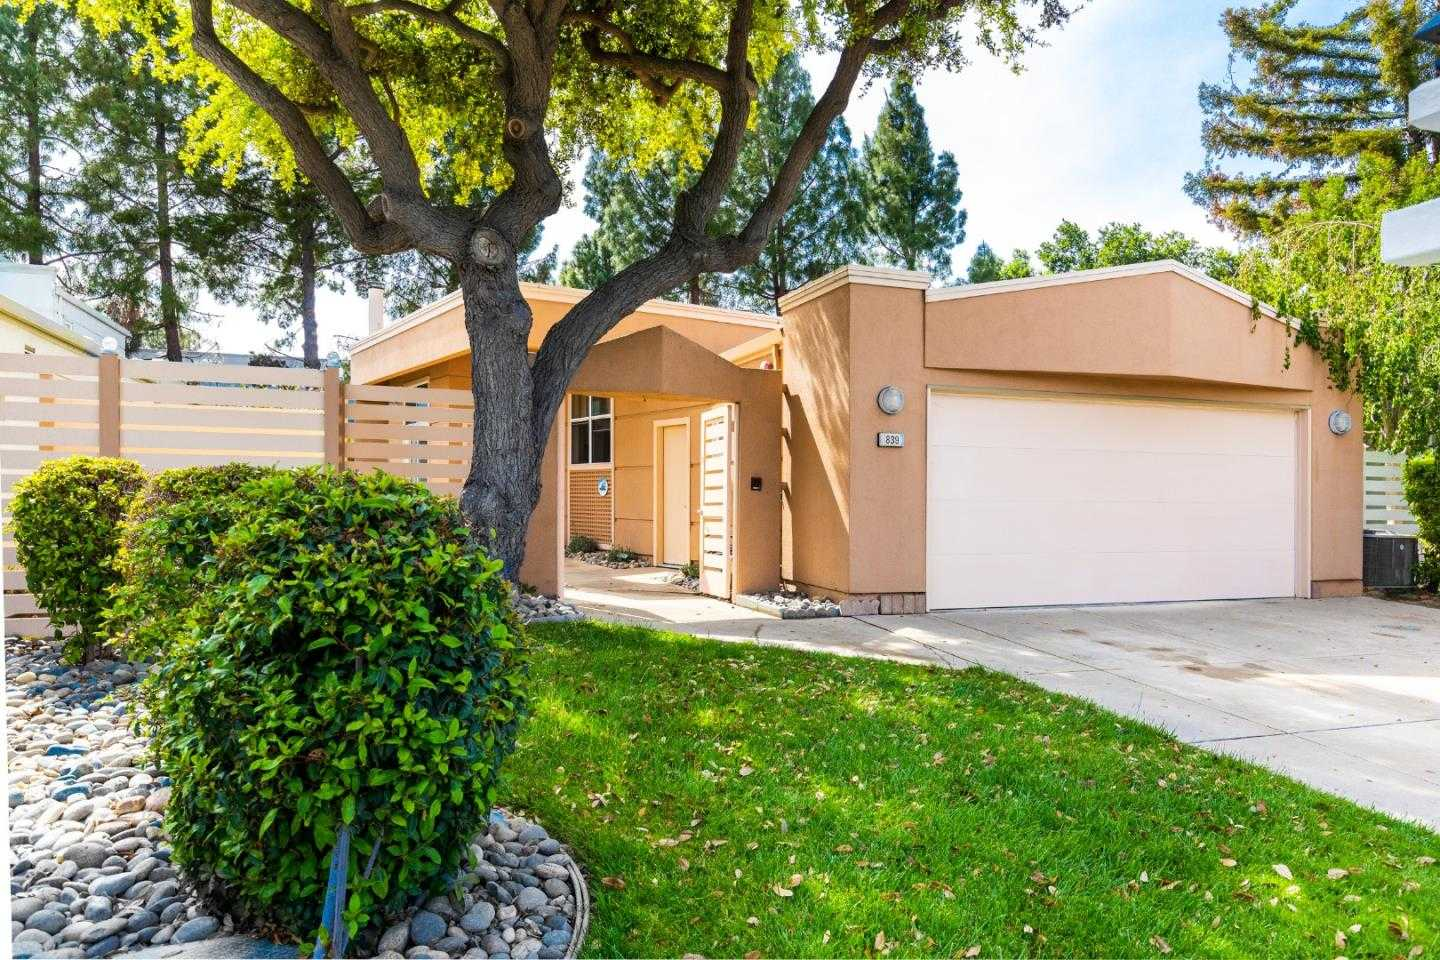 $1,799,000 - 3Br/2Ba -  for Sale in Sunnyvale